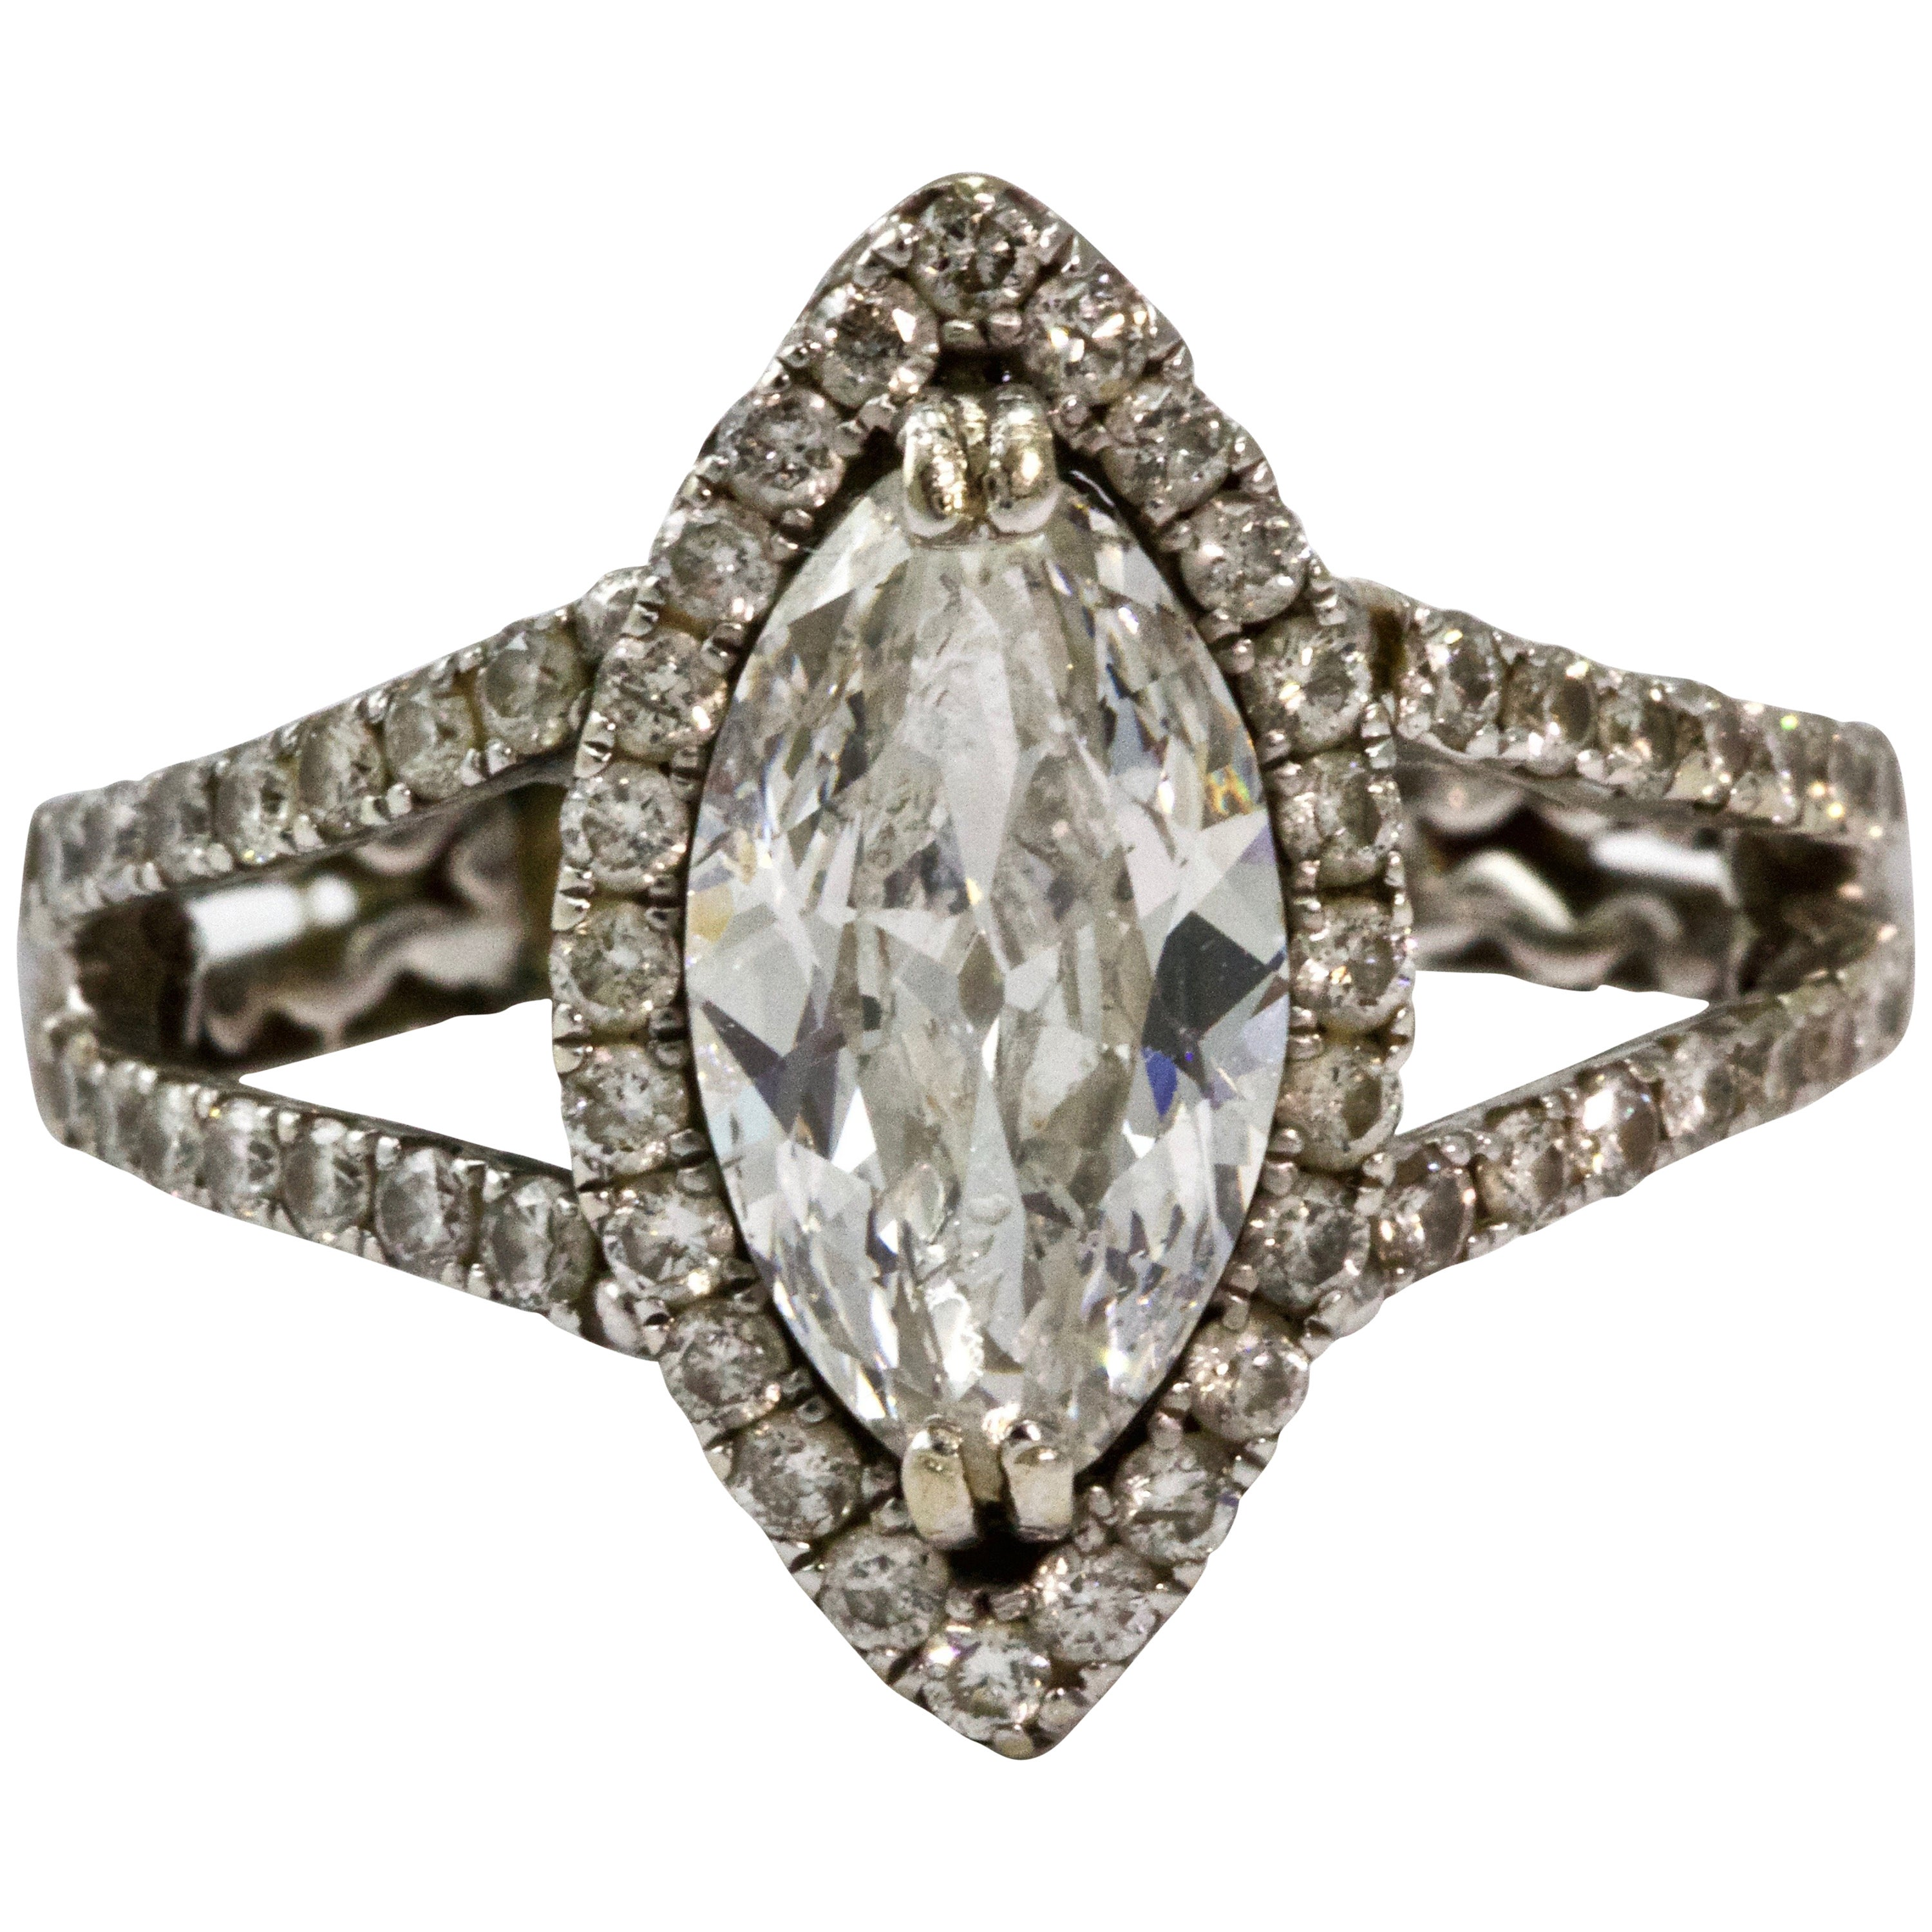 Certified 2.48 Carat Marquise Diamond Engagement Ring